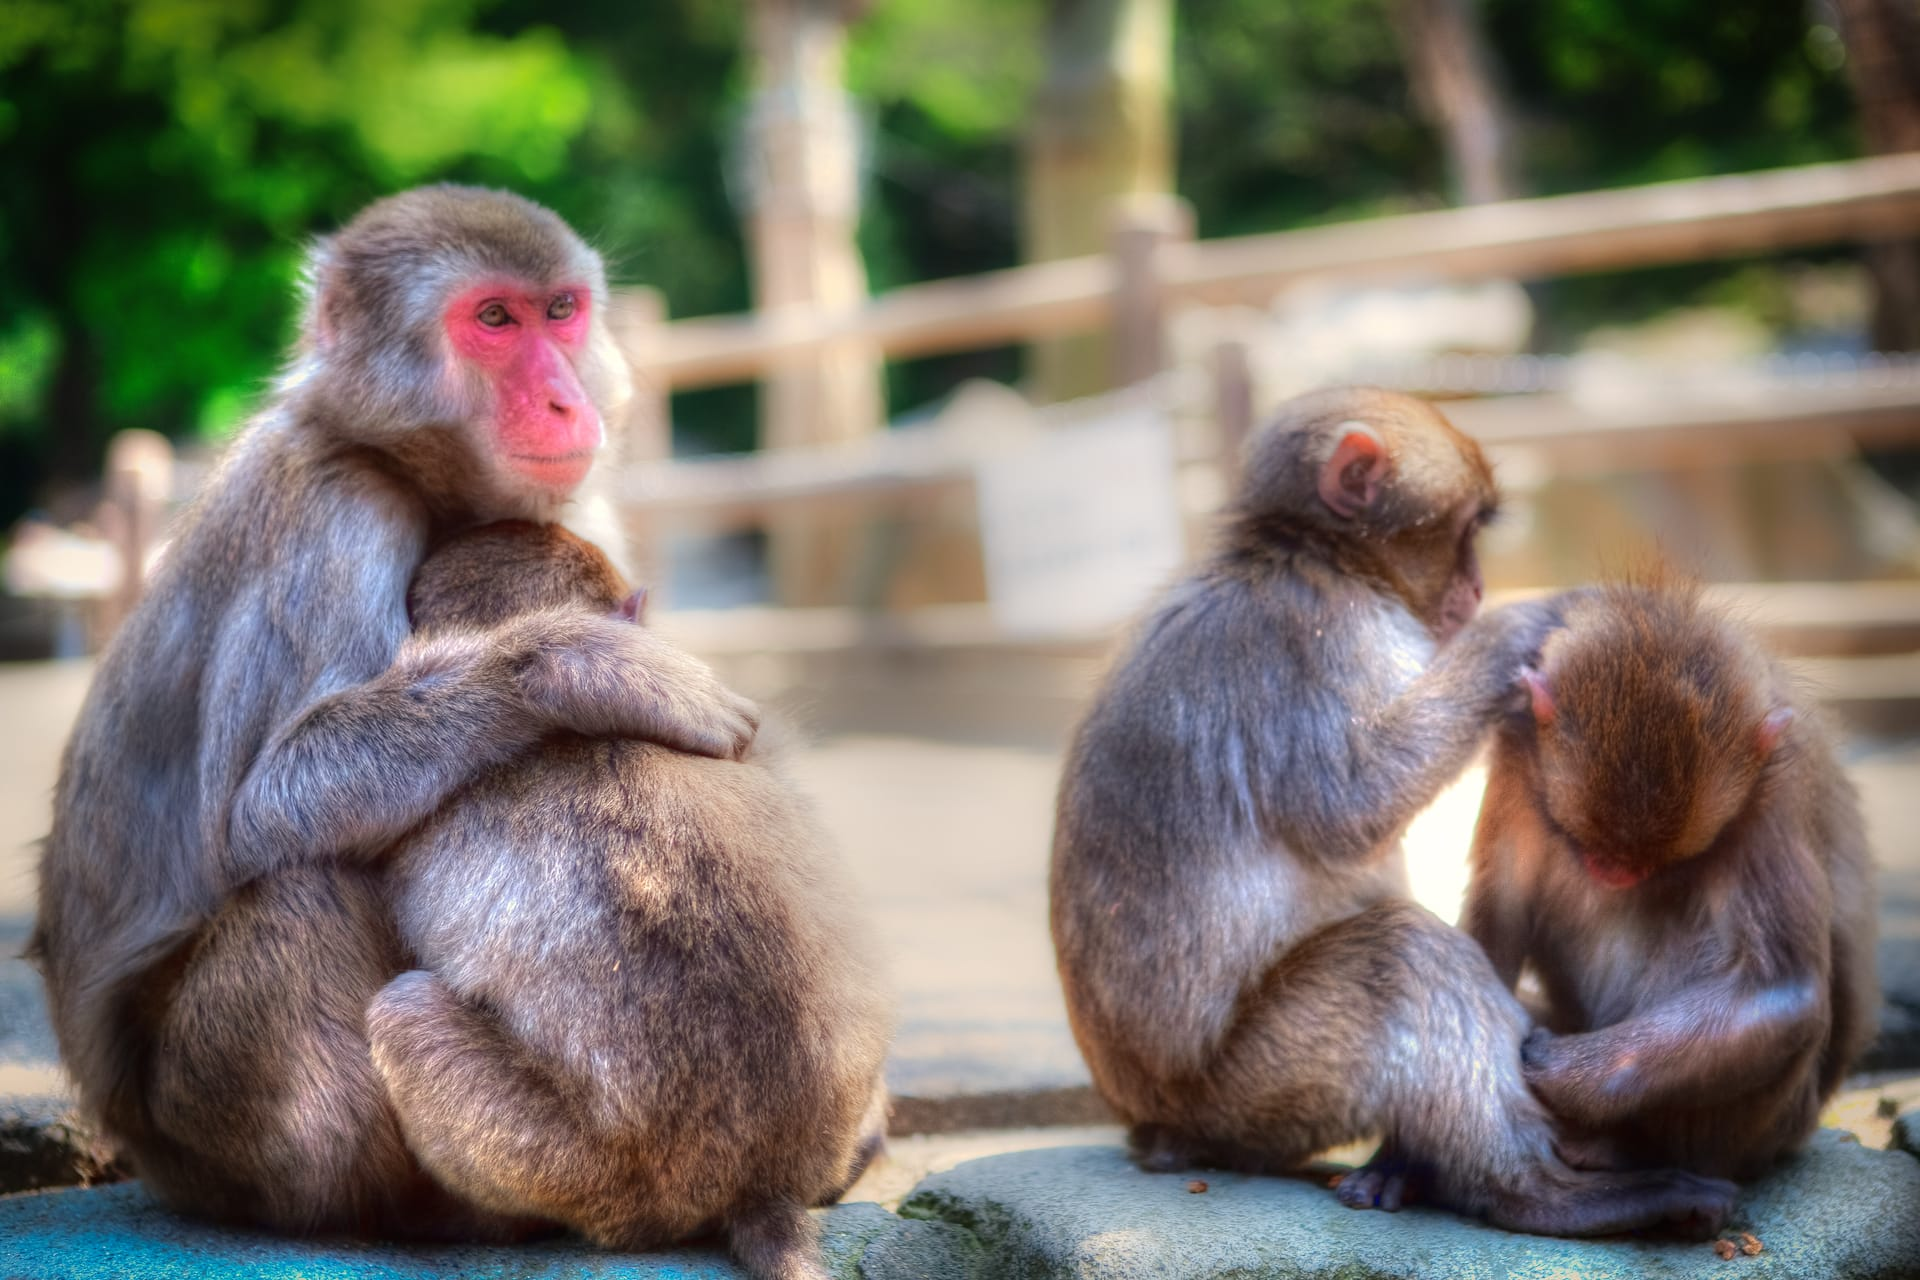 Japanese Monkeys of the Takaski Mountains of Japan